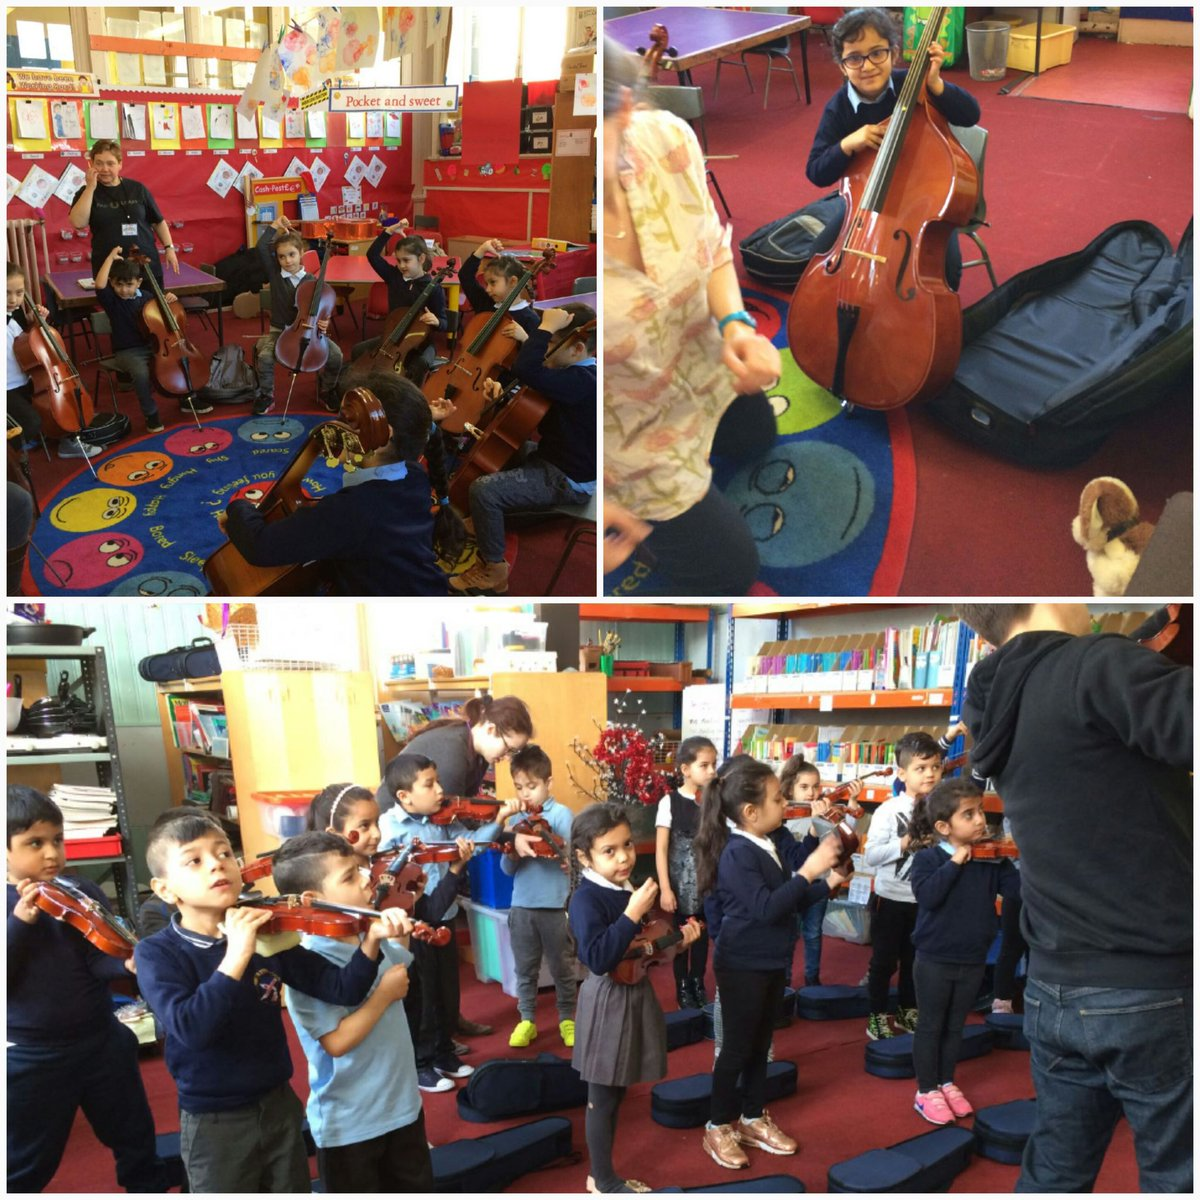 P2s get their real instruments for the first time! @GlasgowCREATE @sistemascotland #exciting #musicians <br>http://pic.twitter.com/2rIHculfJ8